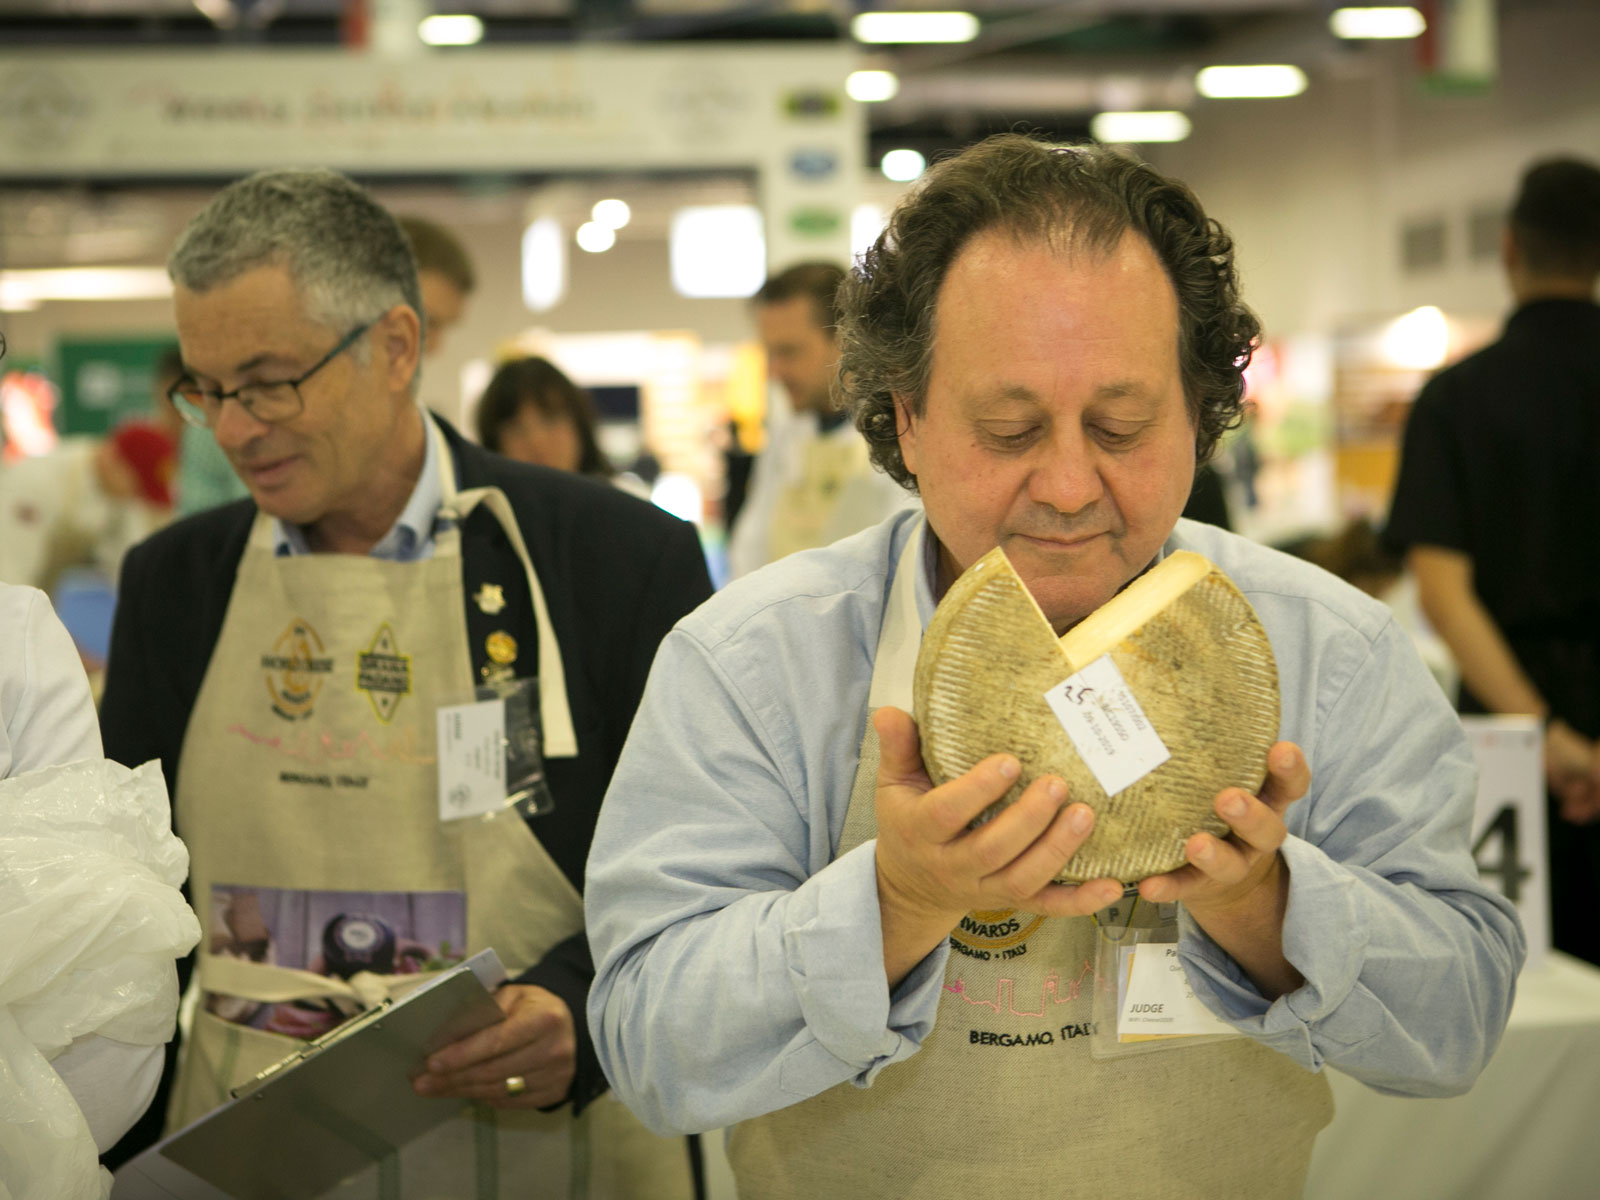 world-cheese-awards-judging-FT-BLOG1019.jpg